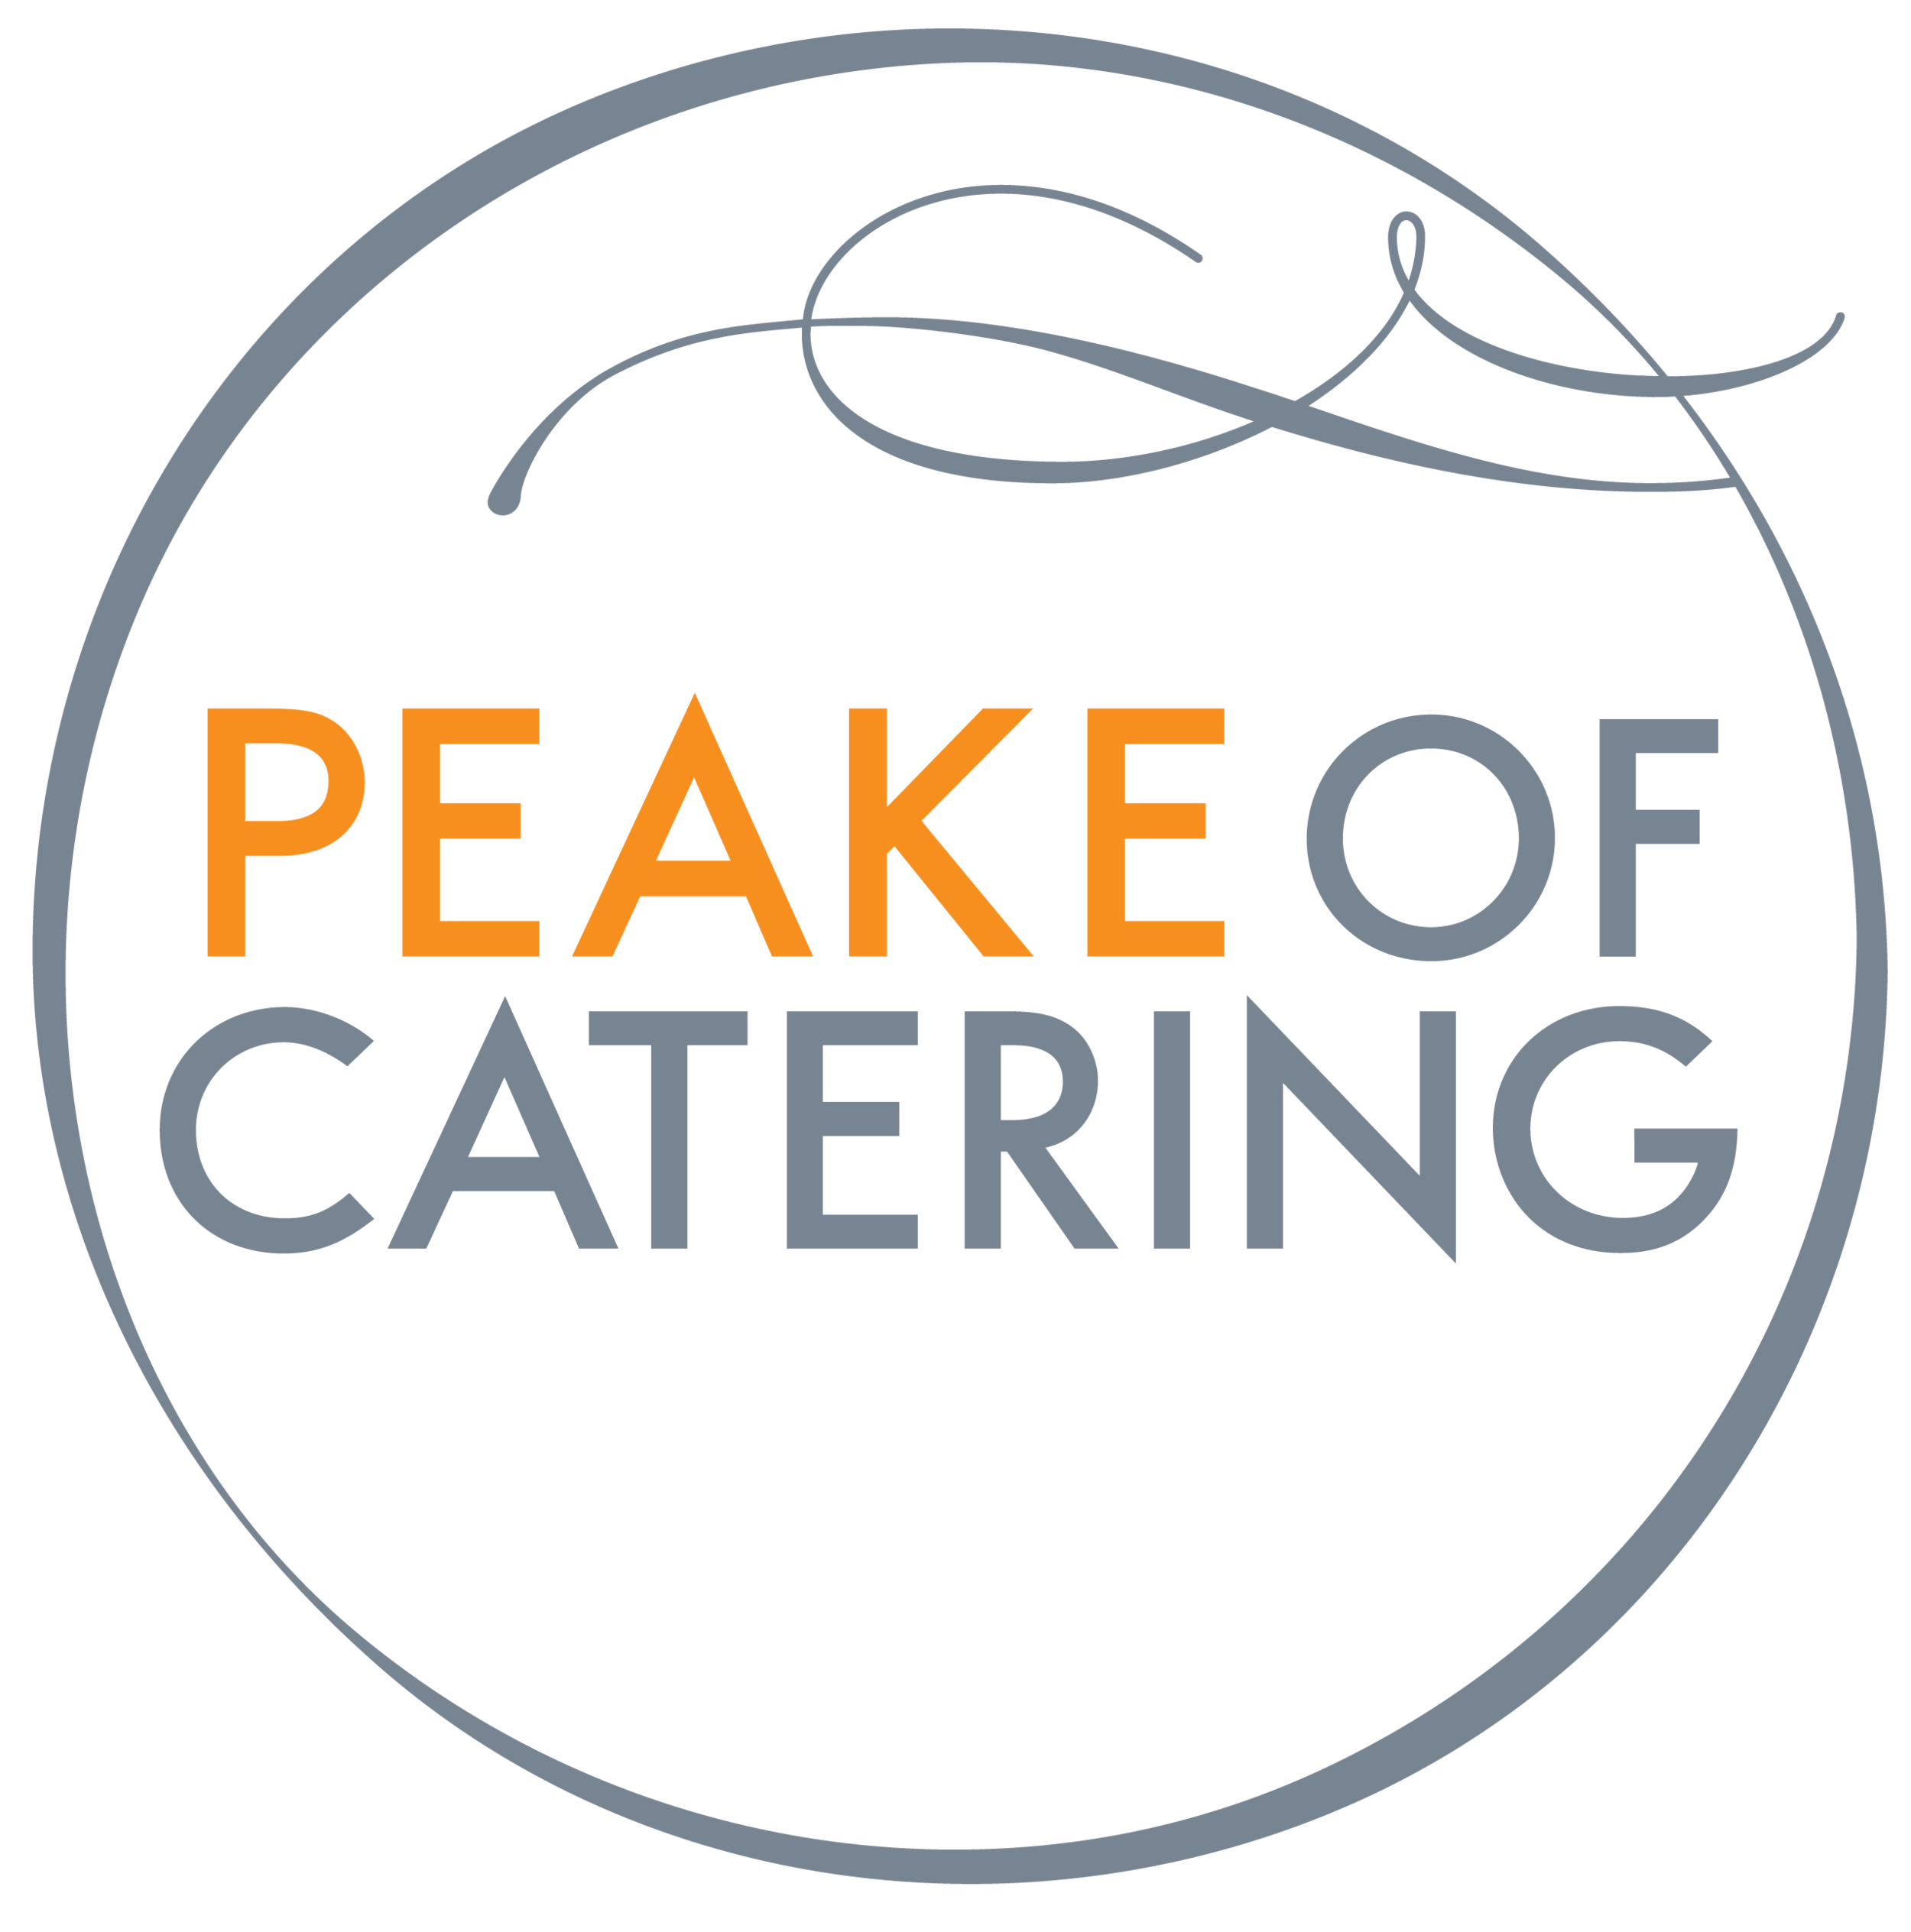 Peake of Catering logo